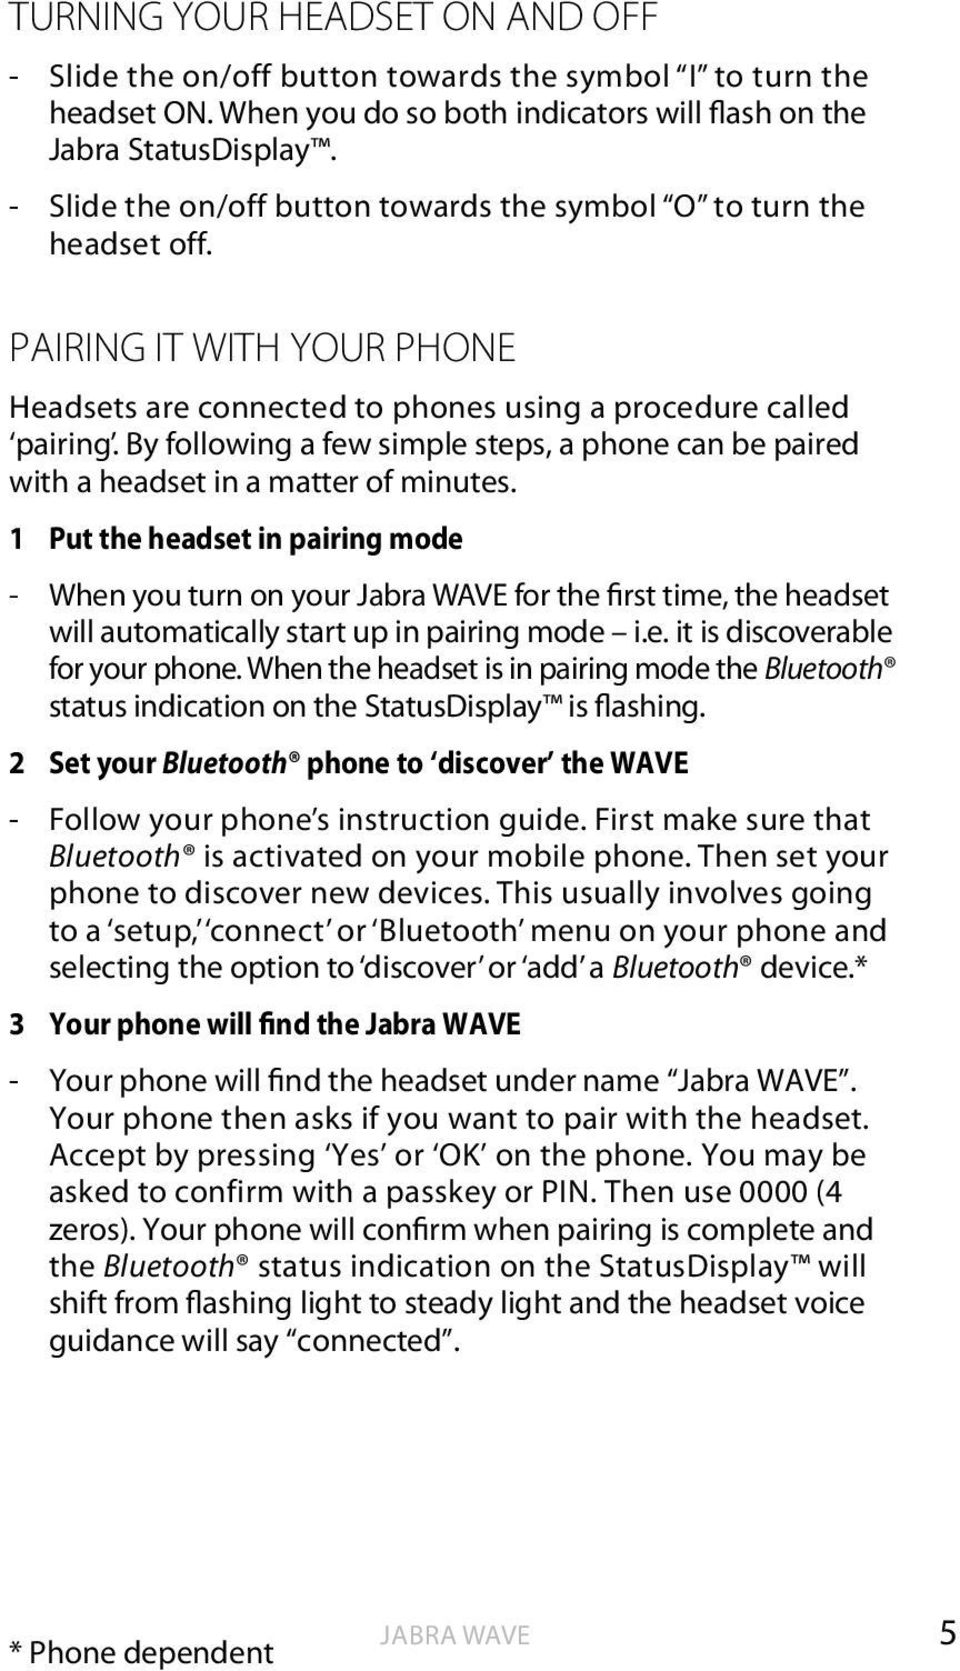 By following a few simple steps, a phone can be paired with a headset in a matter of minutes.